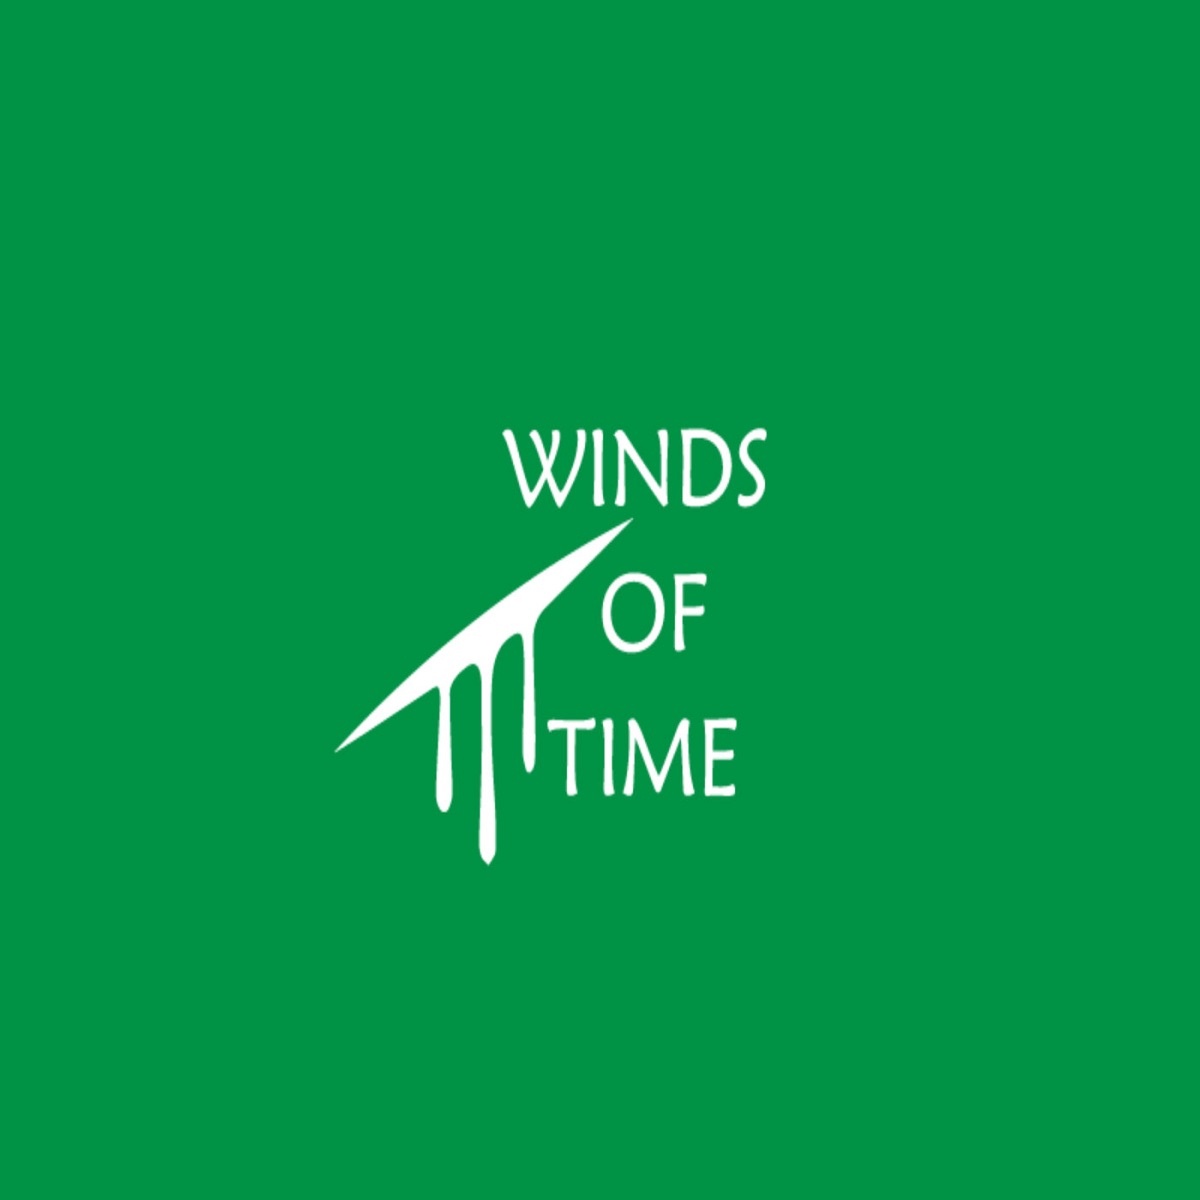 The Winds of Time Podcast